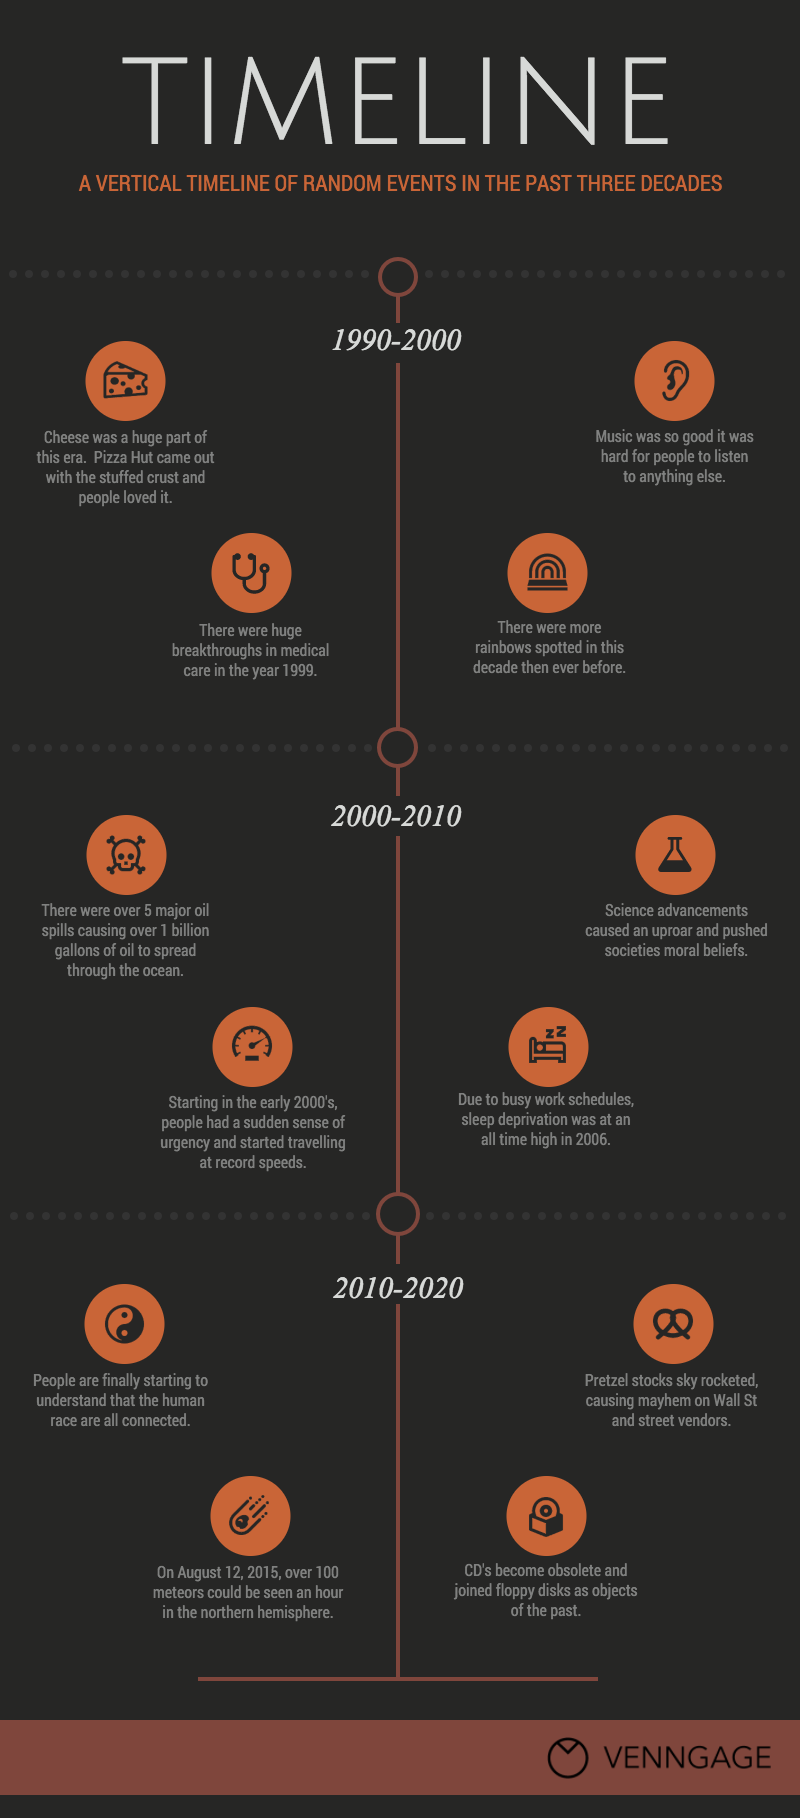 40+ Timeline Template Examples and Design Tips Venngage